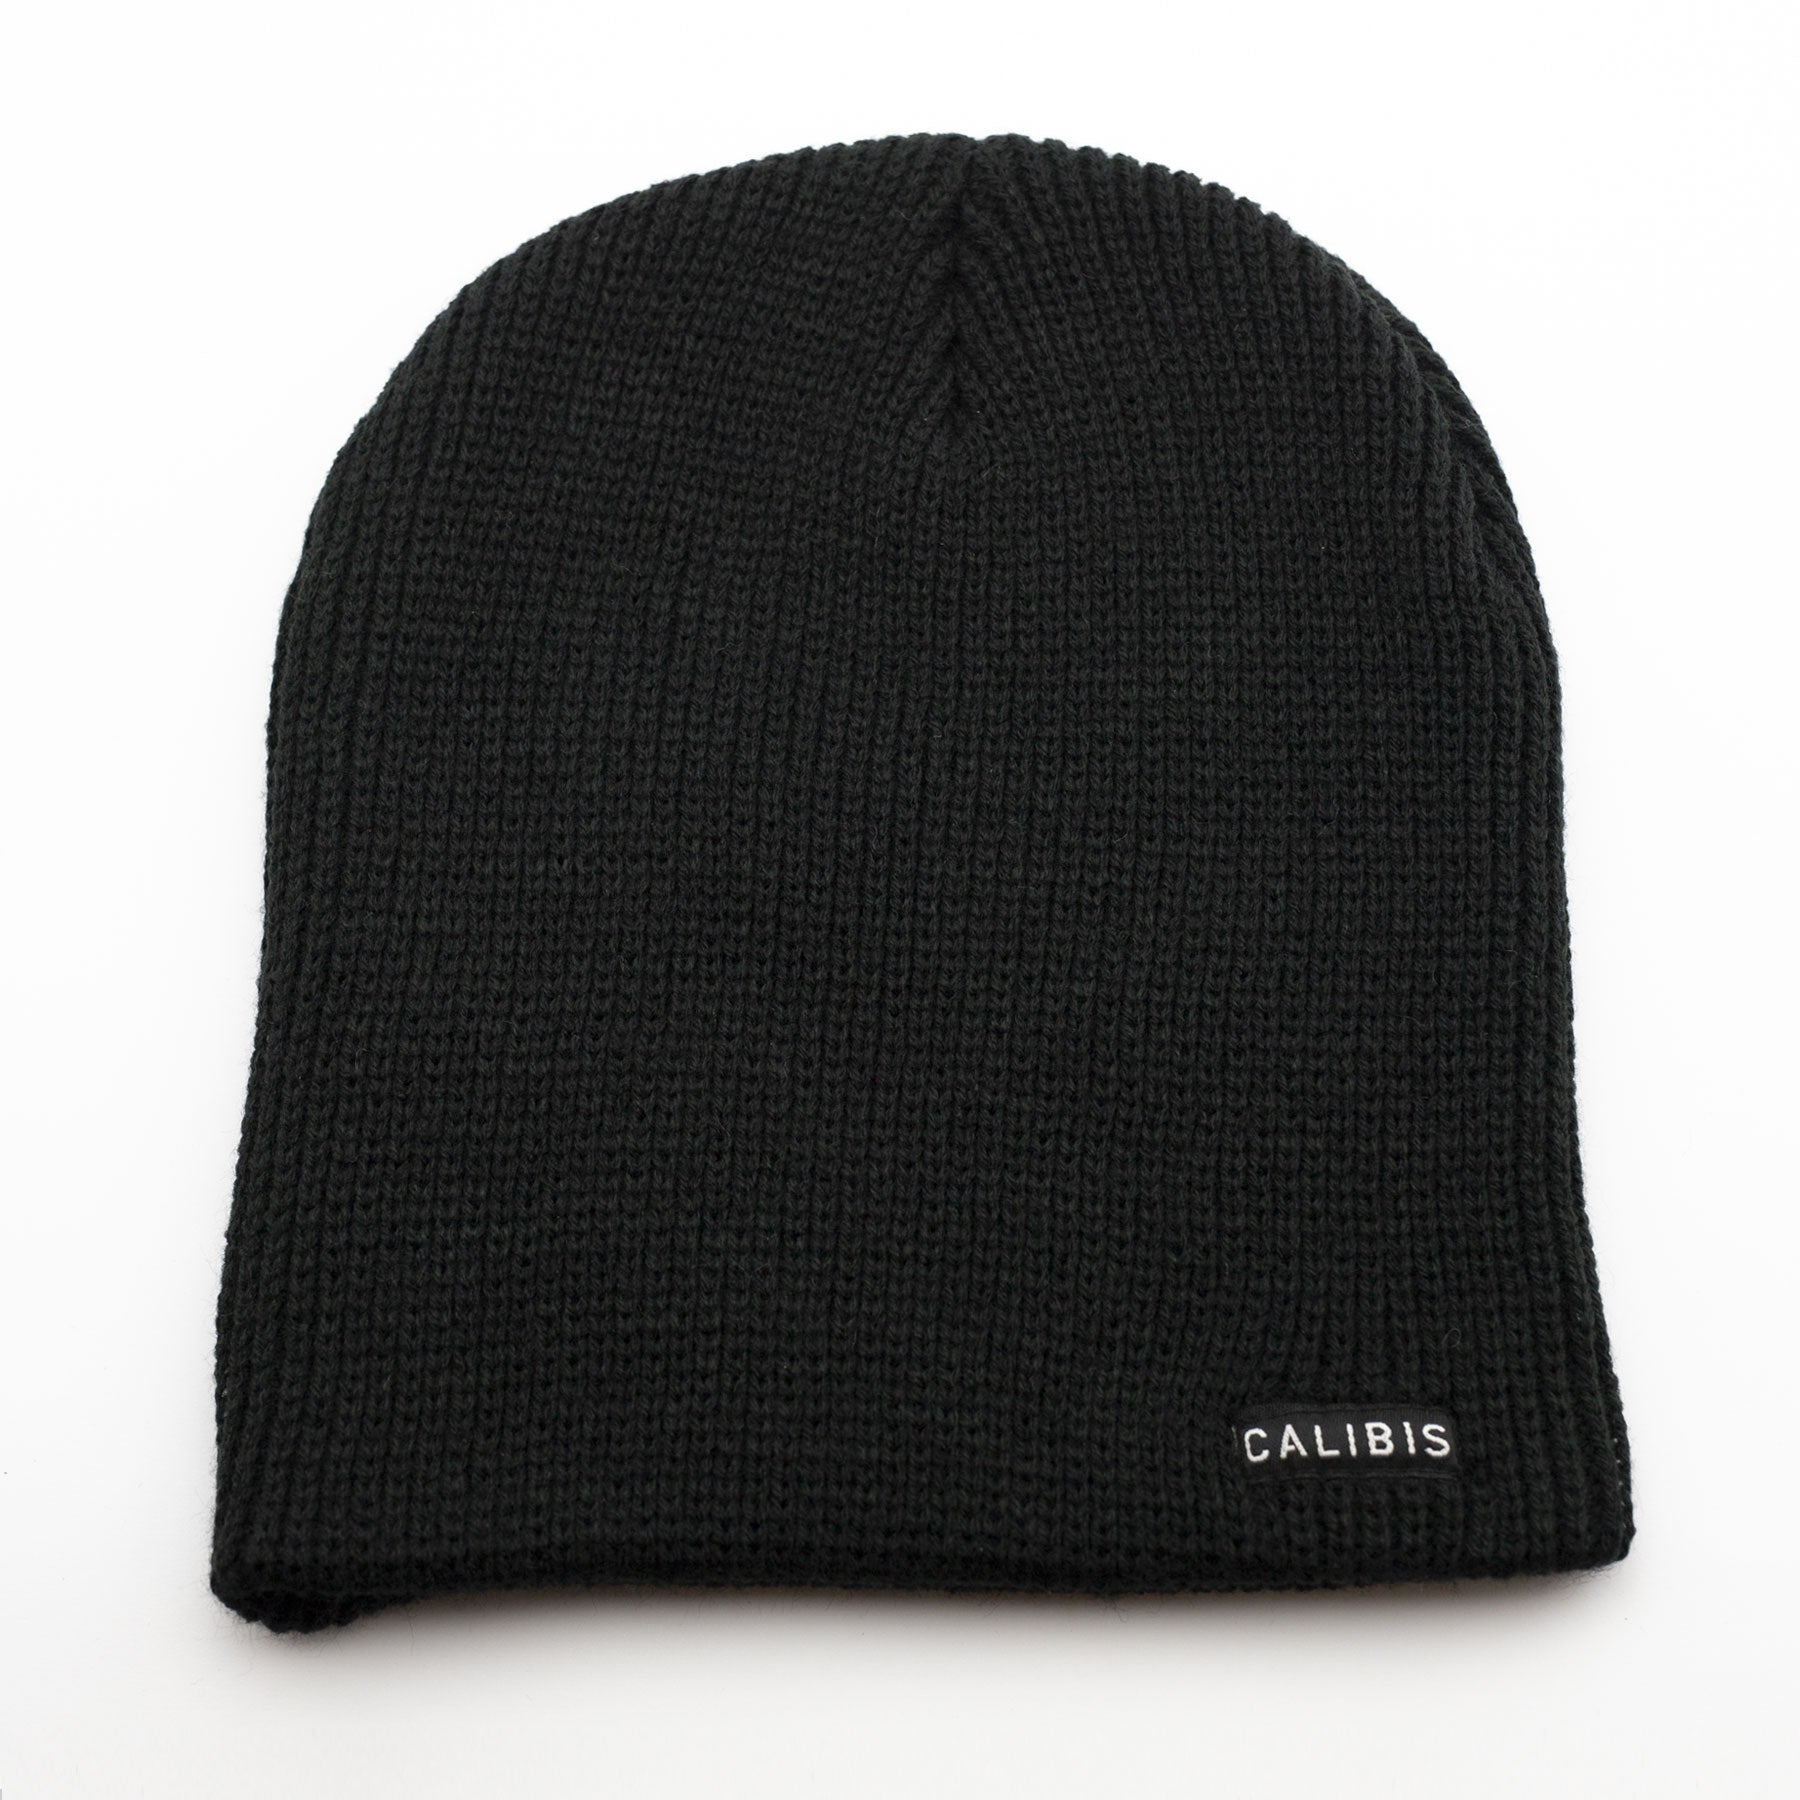 Black Slouchy Beanie by Calibis Clothing